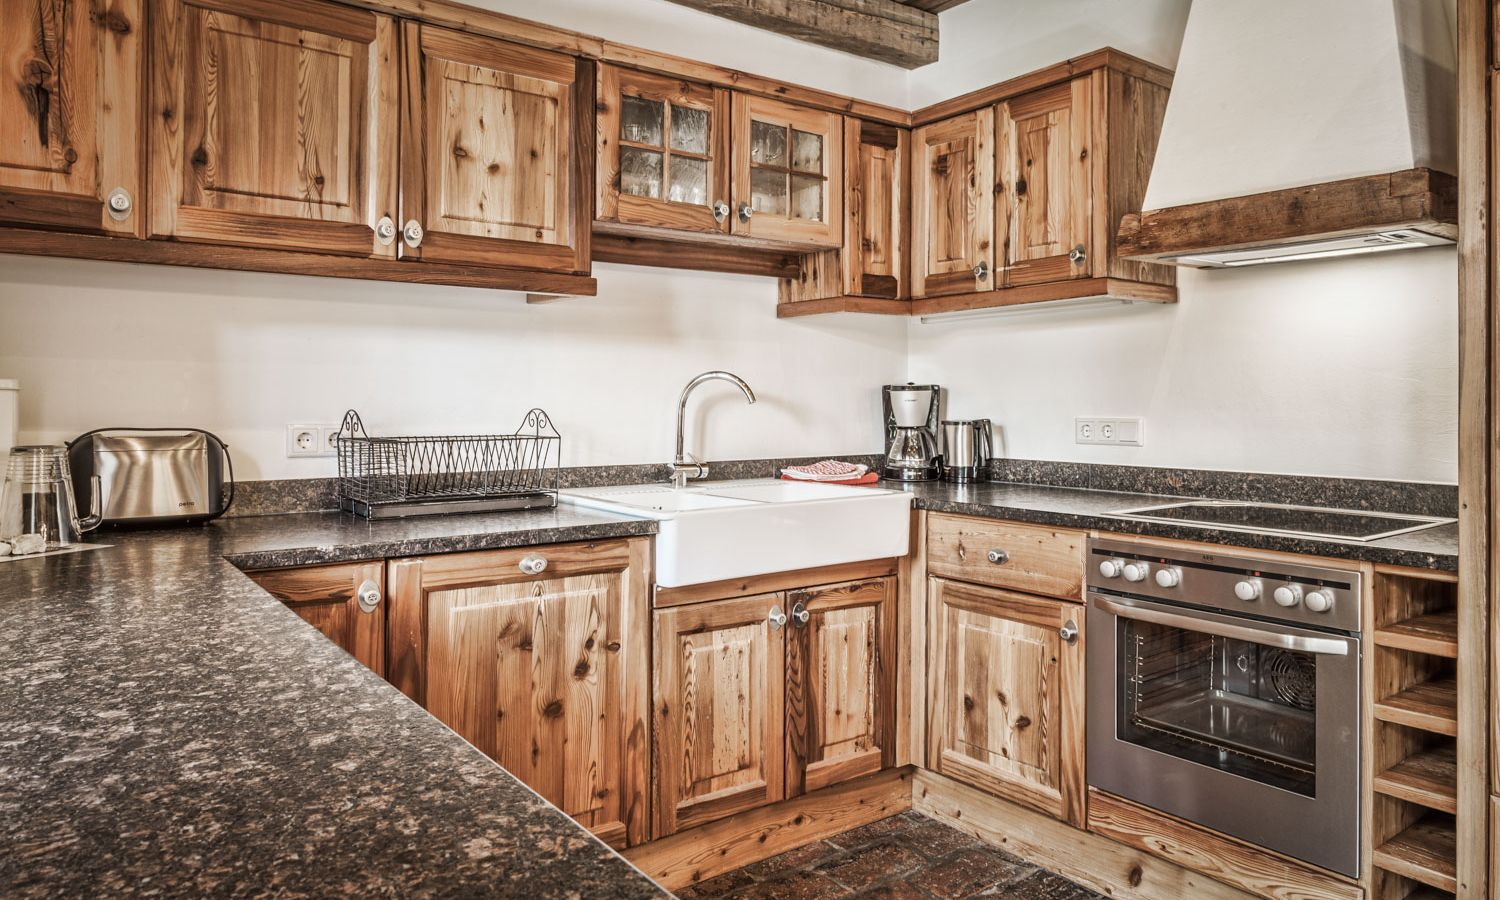 Self-catered chalet with fully equipped kitchen – st martin chalets